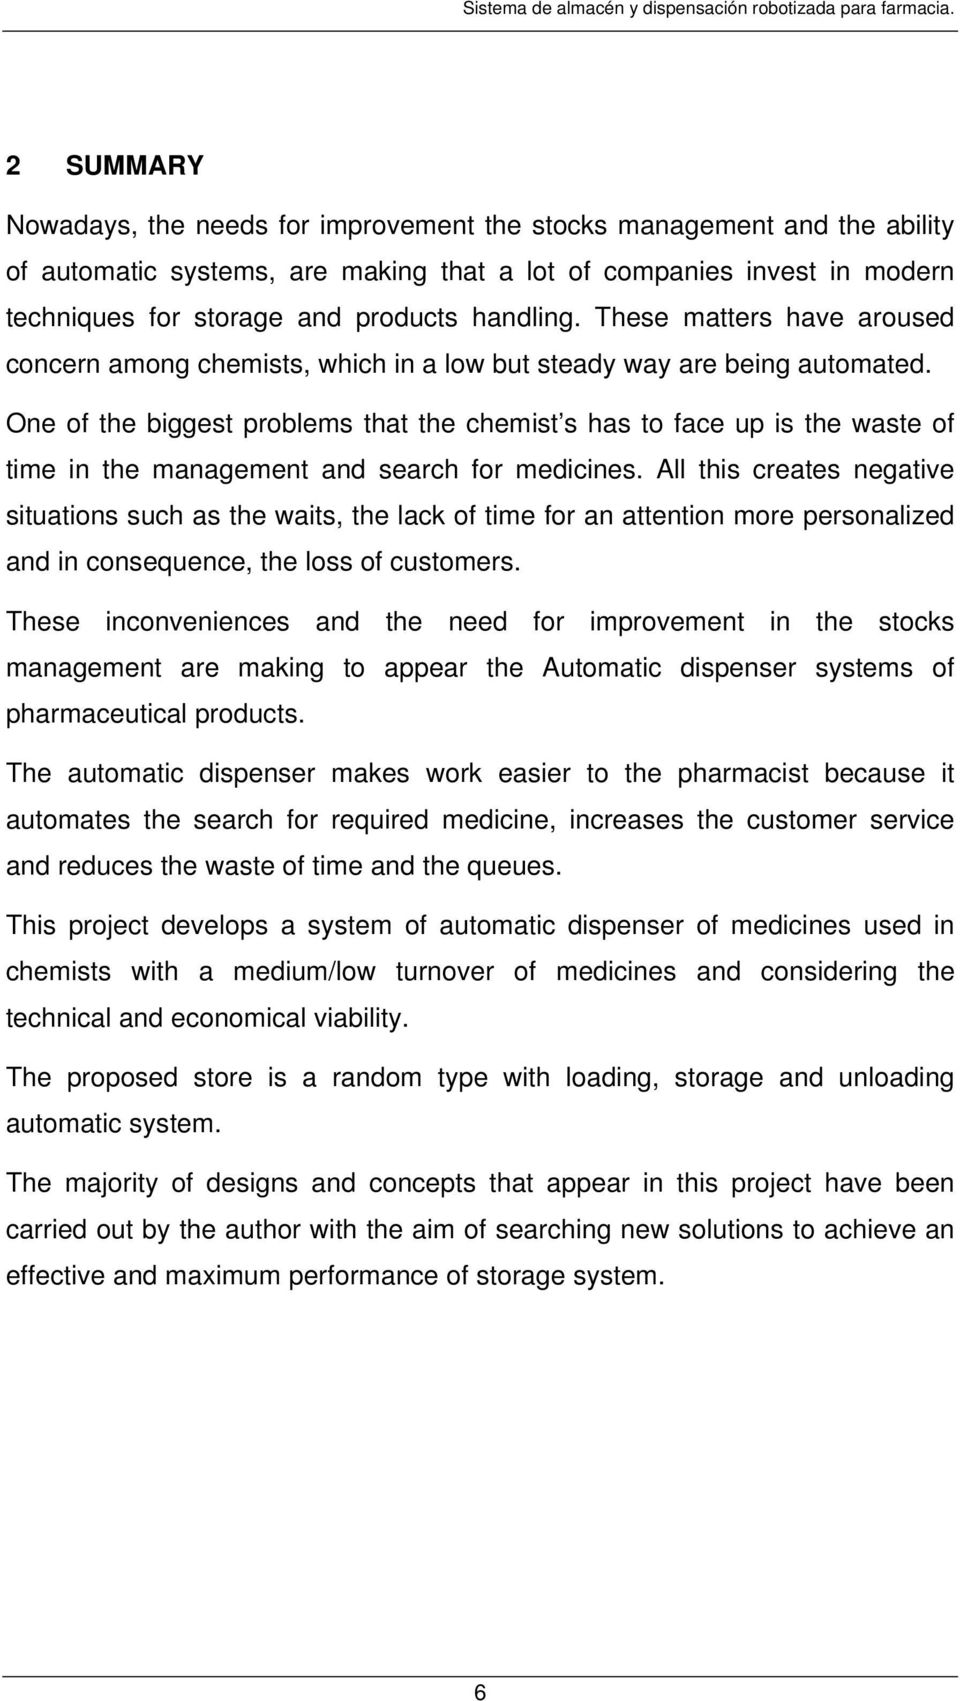 One of the biggest problems that the chemist s has to face up is the waste of time in the management and search for medicines.